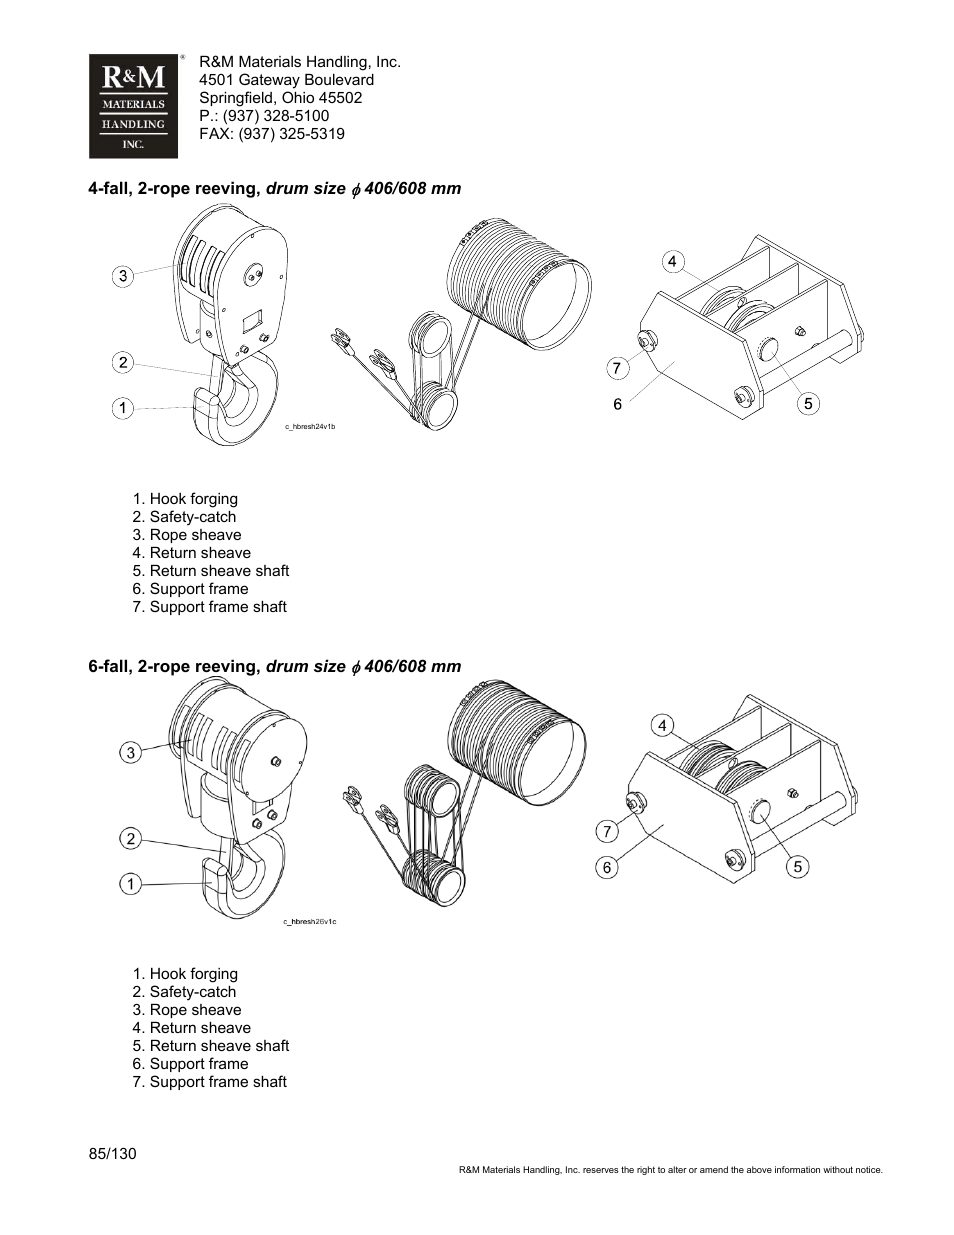 medium resolution of r m materials handling wire rope hoists service user manual page 85 130